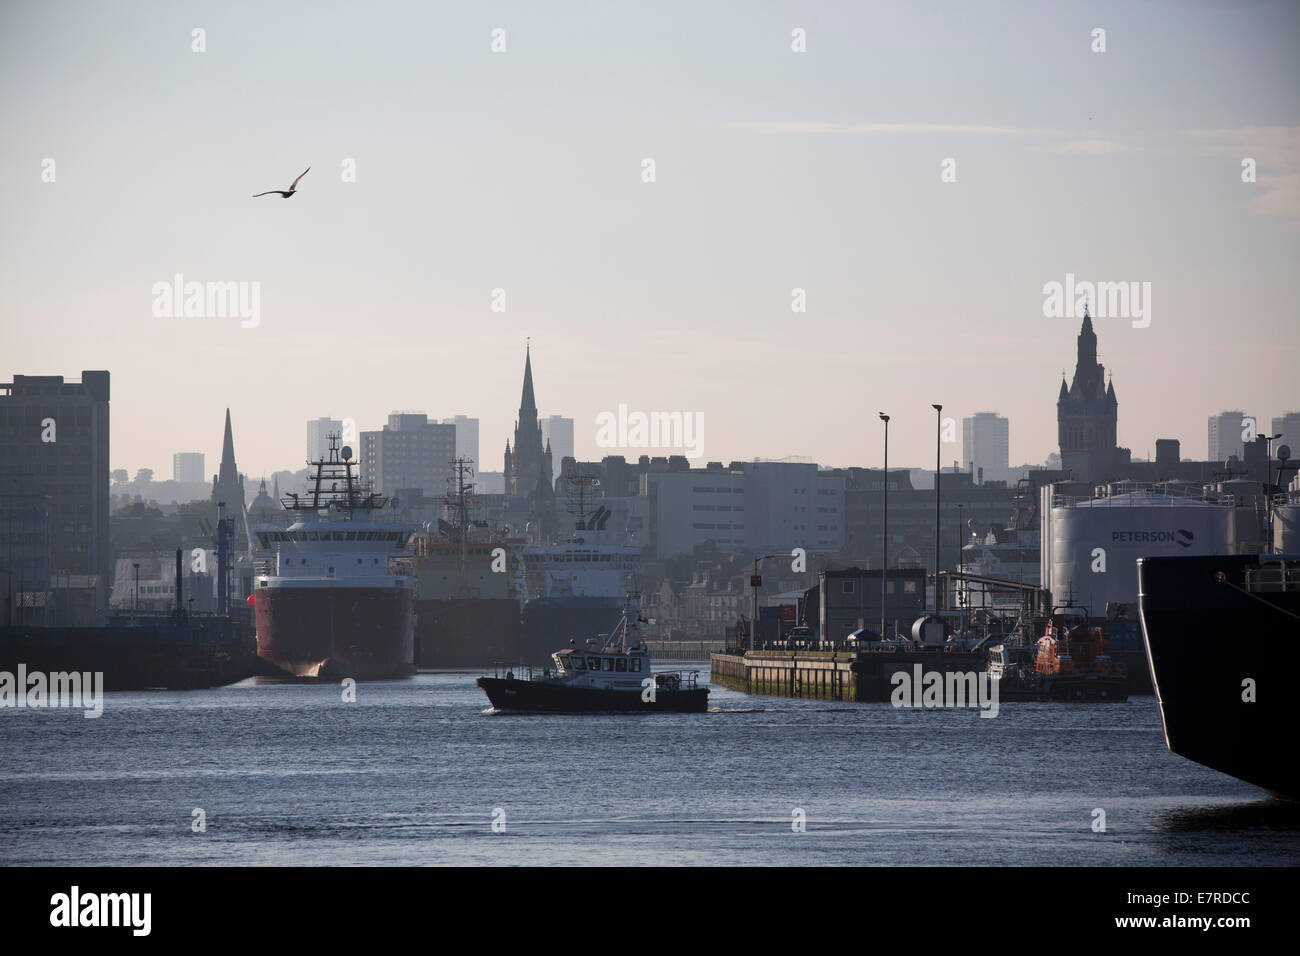 A view towards the city centre from Aberdeen harbour, the Scotland's North Sea oil and gas transportation and - Stock Image